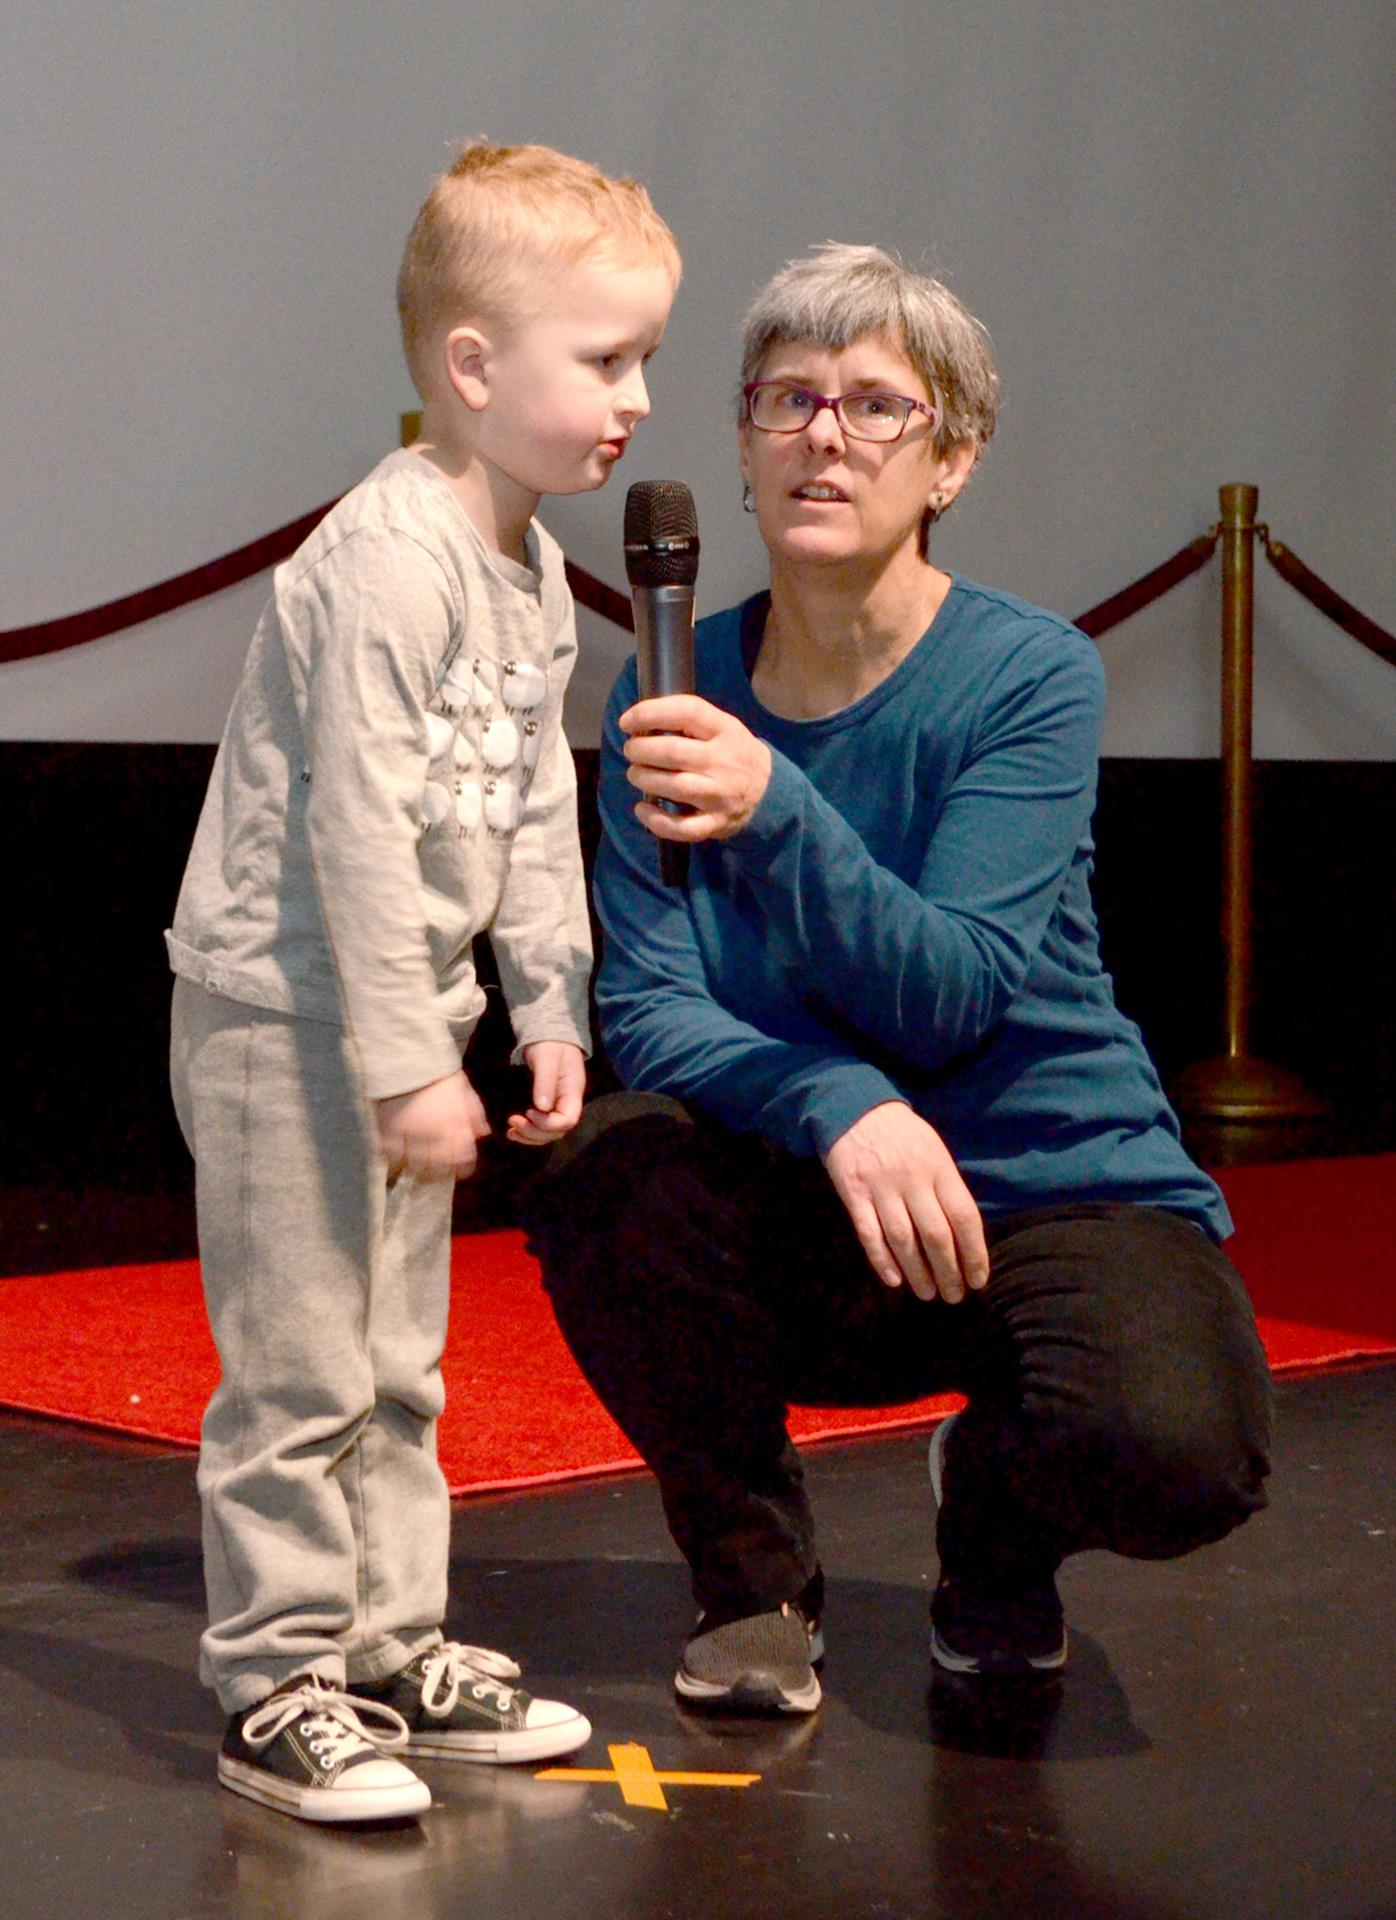 Young boy with teacher Bobbi Stensland